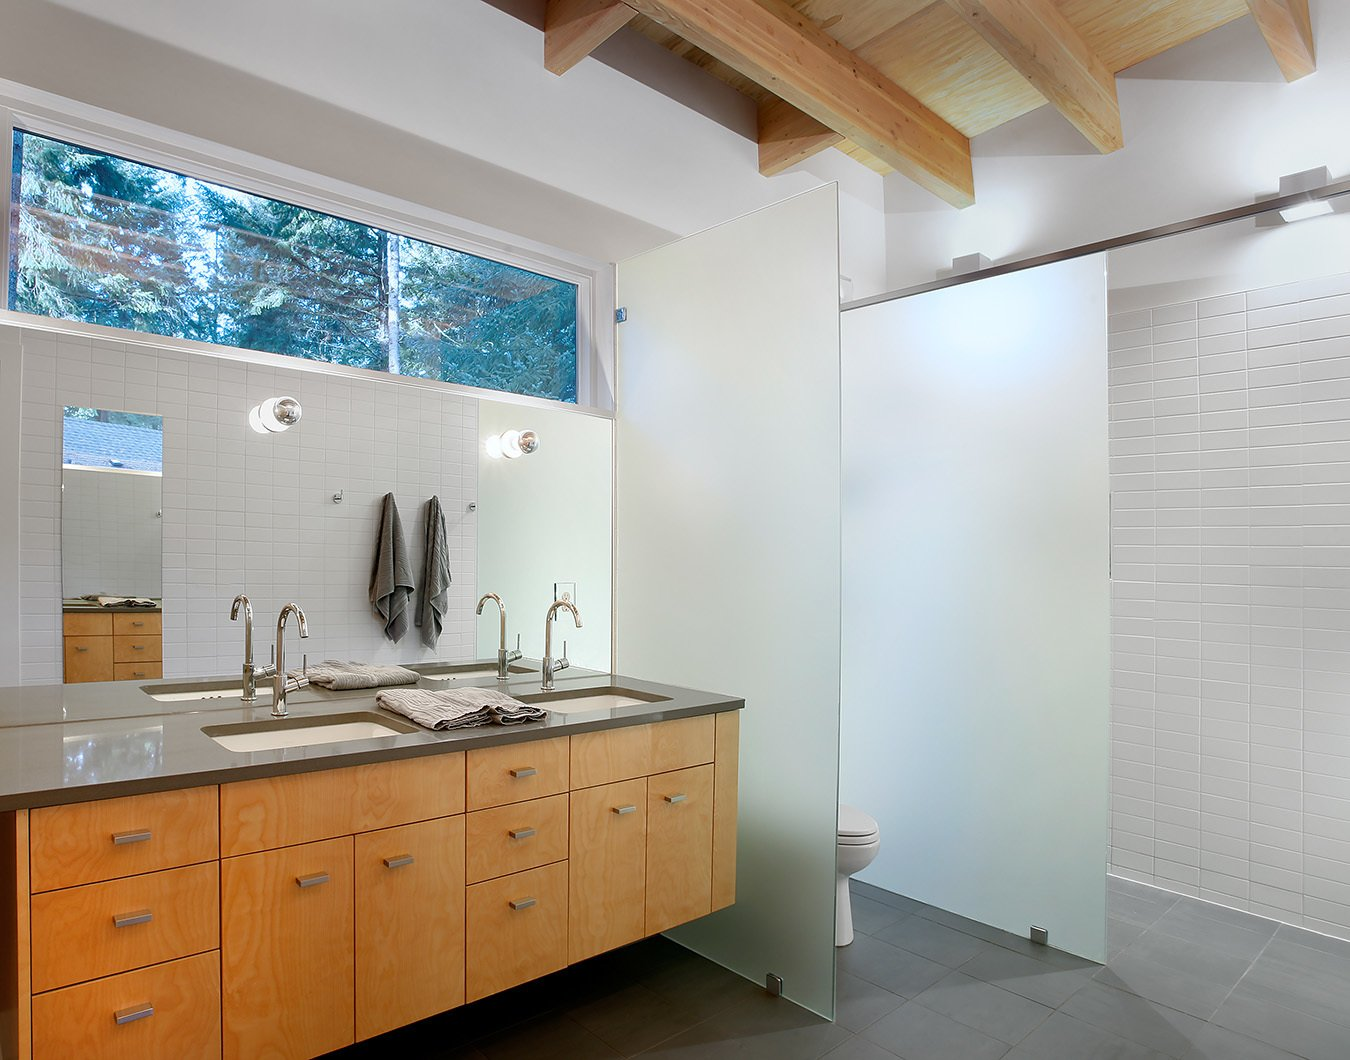 Matching Ladena sinks by Kohler, outfitted with Talis S faucets by Hansgrohe, stand inside polished Stormy Sky countertops by PentalQuartz.  Courtyard House on a River by Kelly Dawson